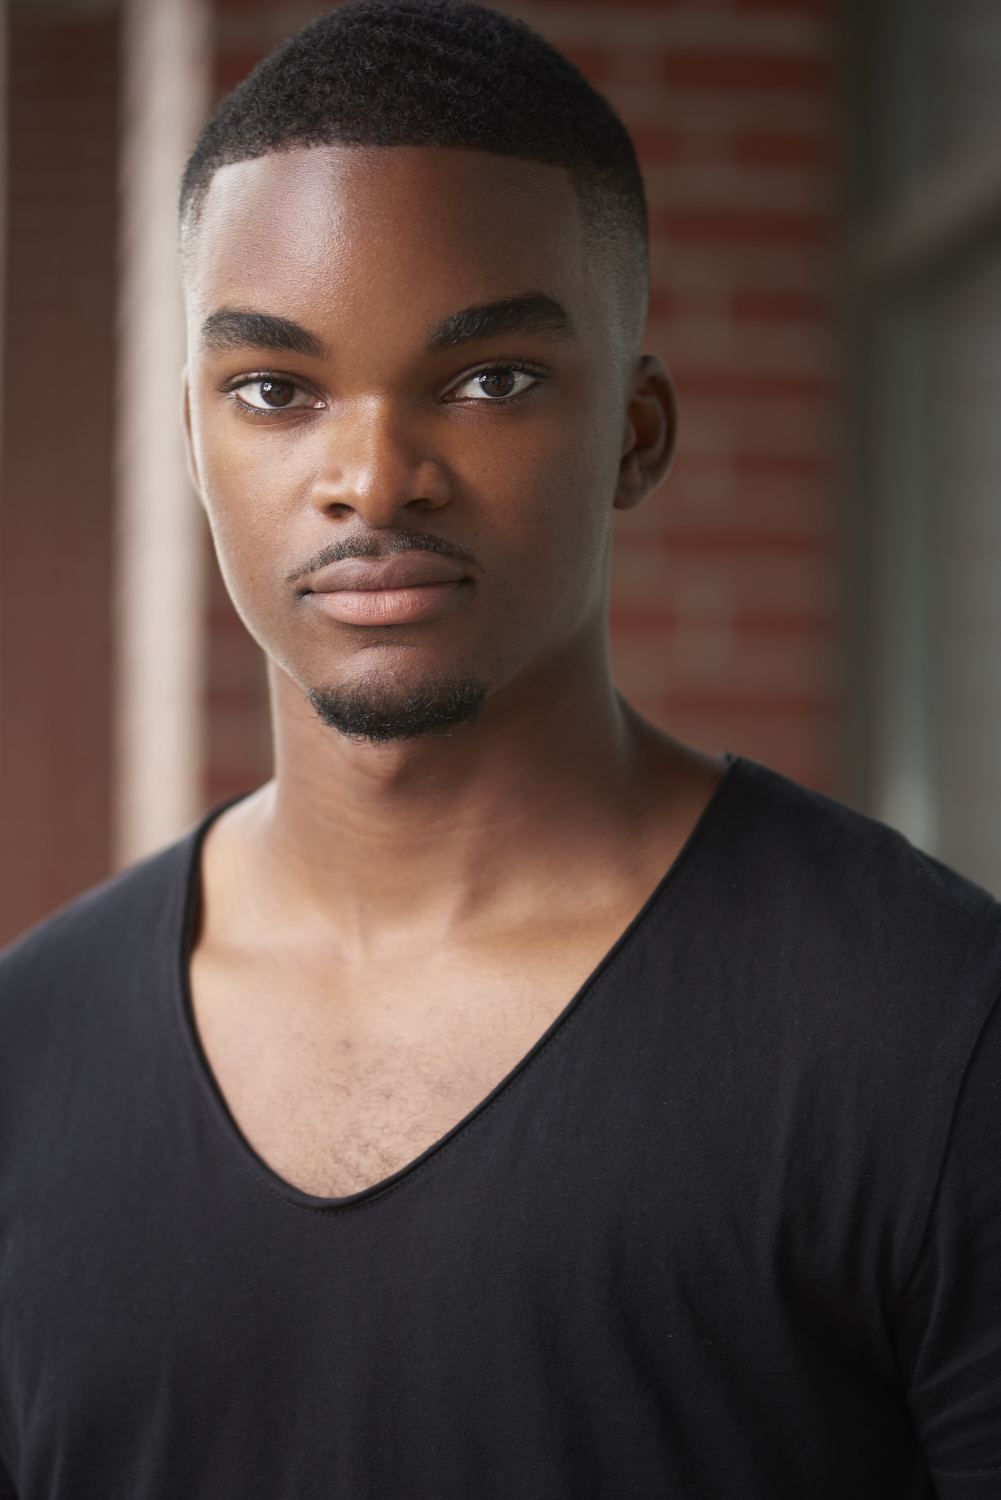 Headshot-session-on-location-with-Michael-4